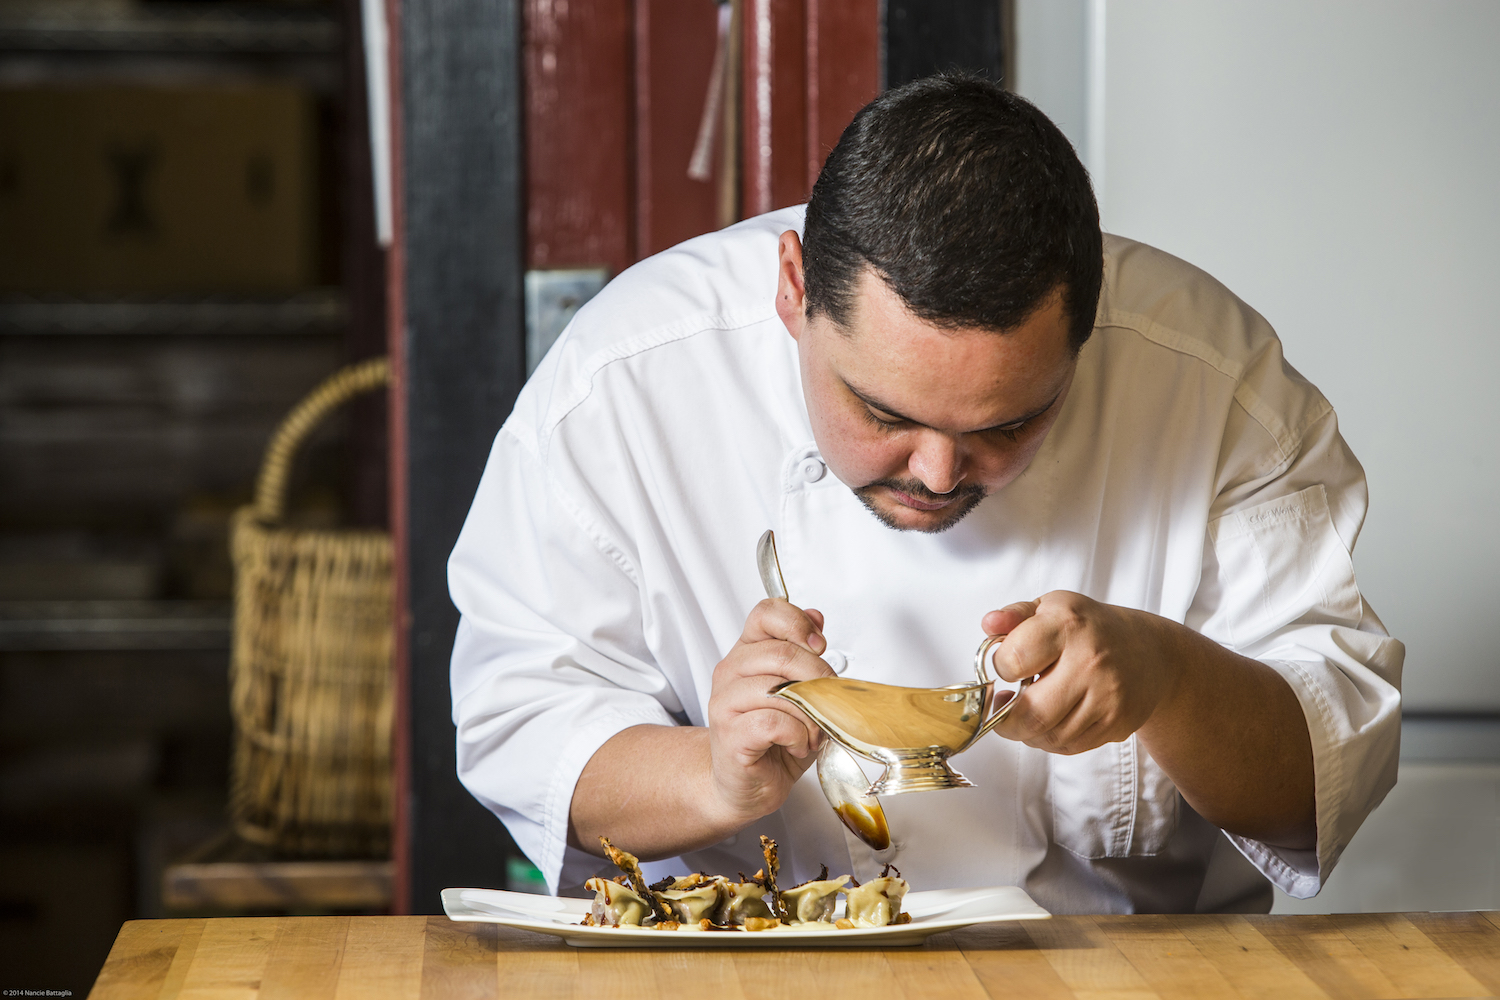 Executive Chef Loic Leperlier, food, scenes and kitchen activity at The Point, a resort on Upper Saranac Lake in the Adirondack Mountains of upstate NY. photo by Nancie Battaglia